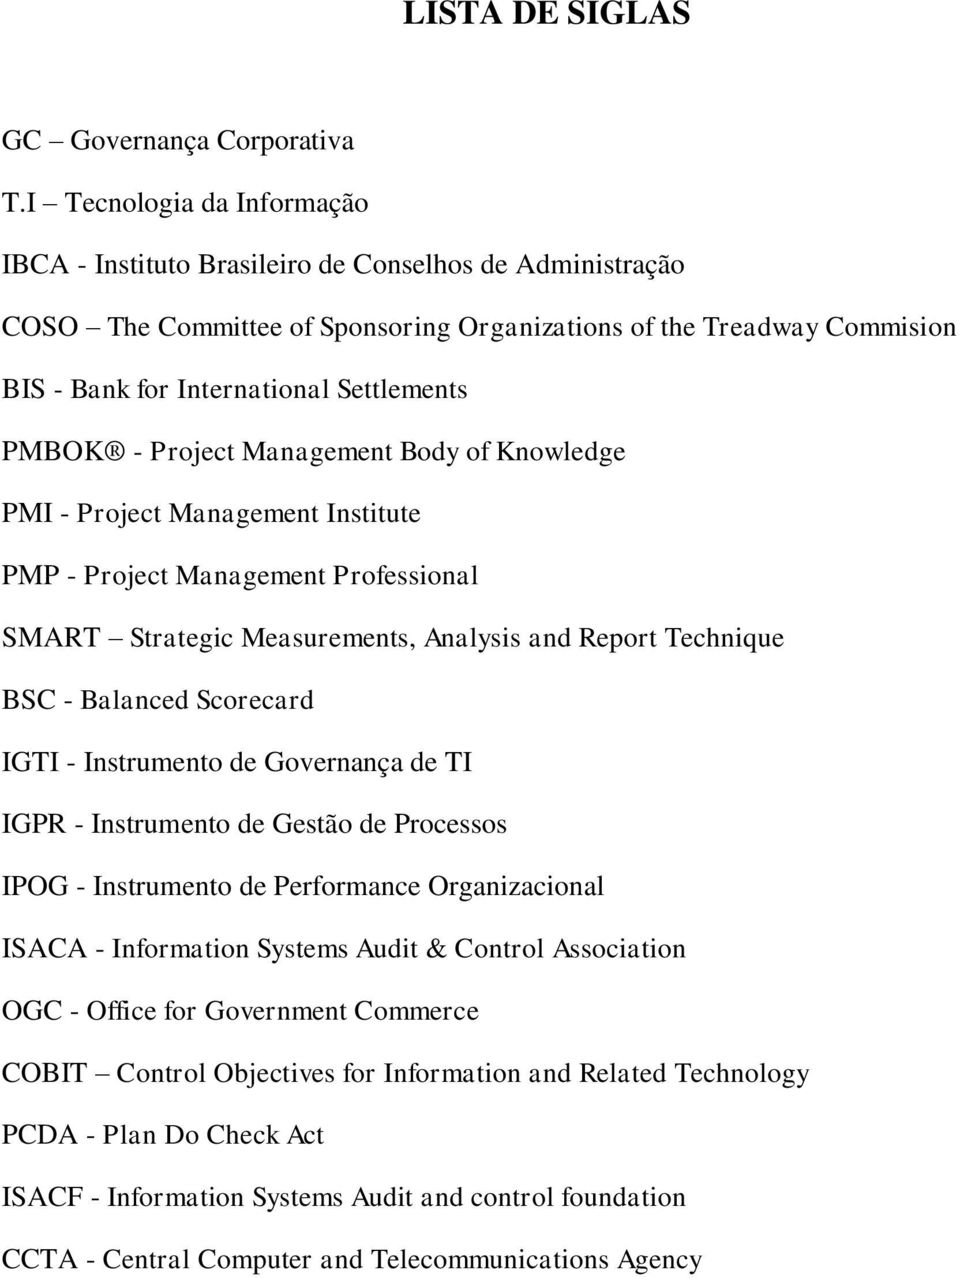 PMBOK Project Management Body of Knowledge PMI Project Management Institute PMP Project Management Professional SMART Strategic Measurements, Analysis and Report Technique BSC Balanced Scorecard IGTI